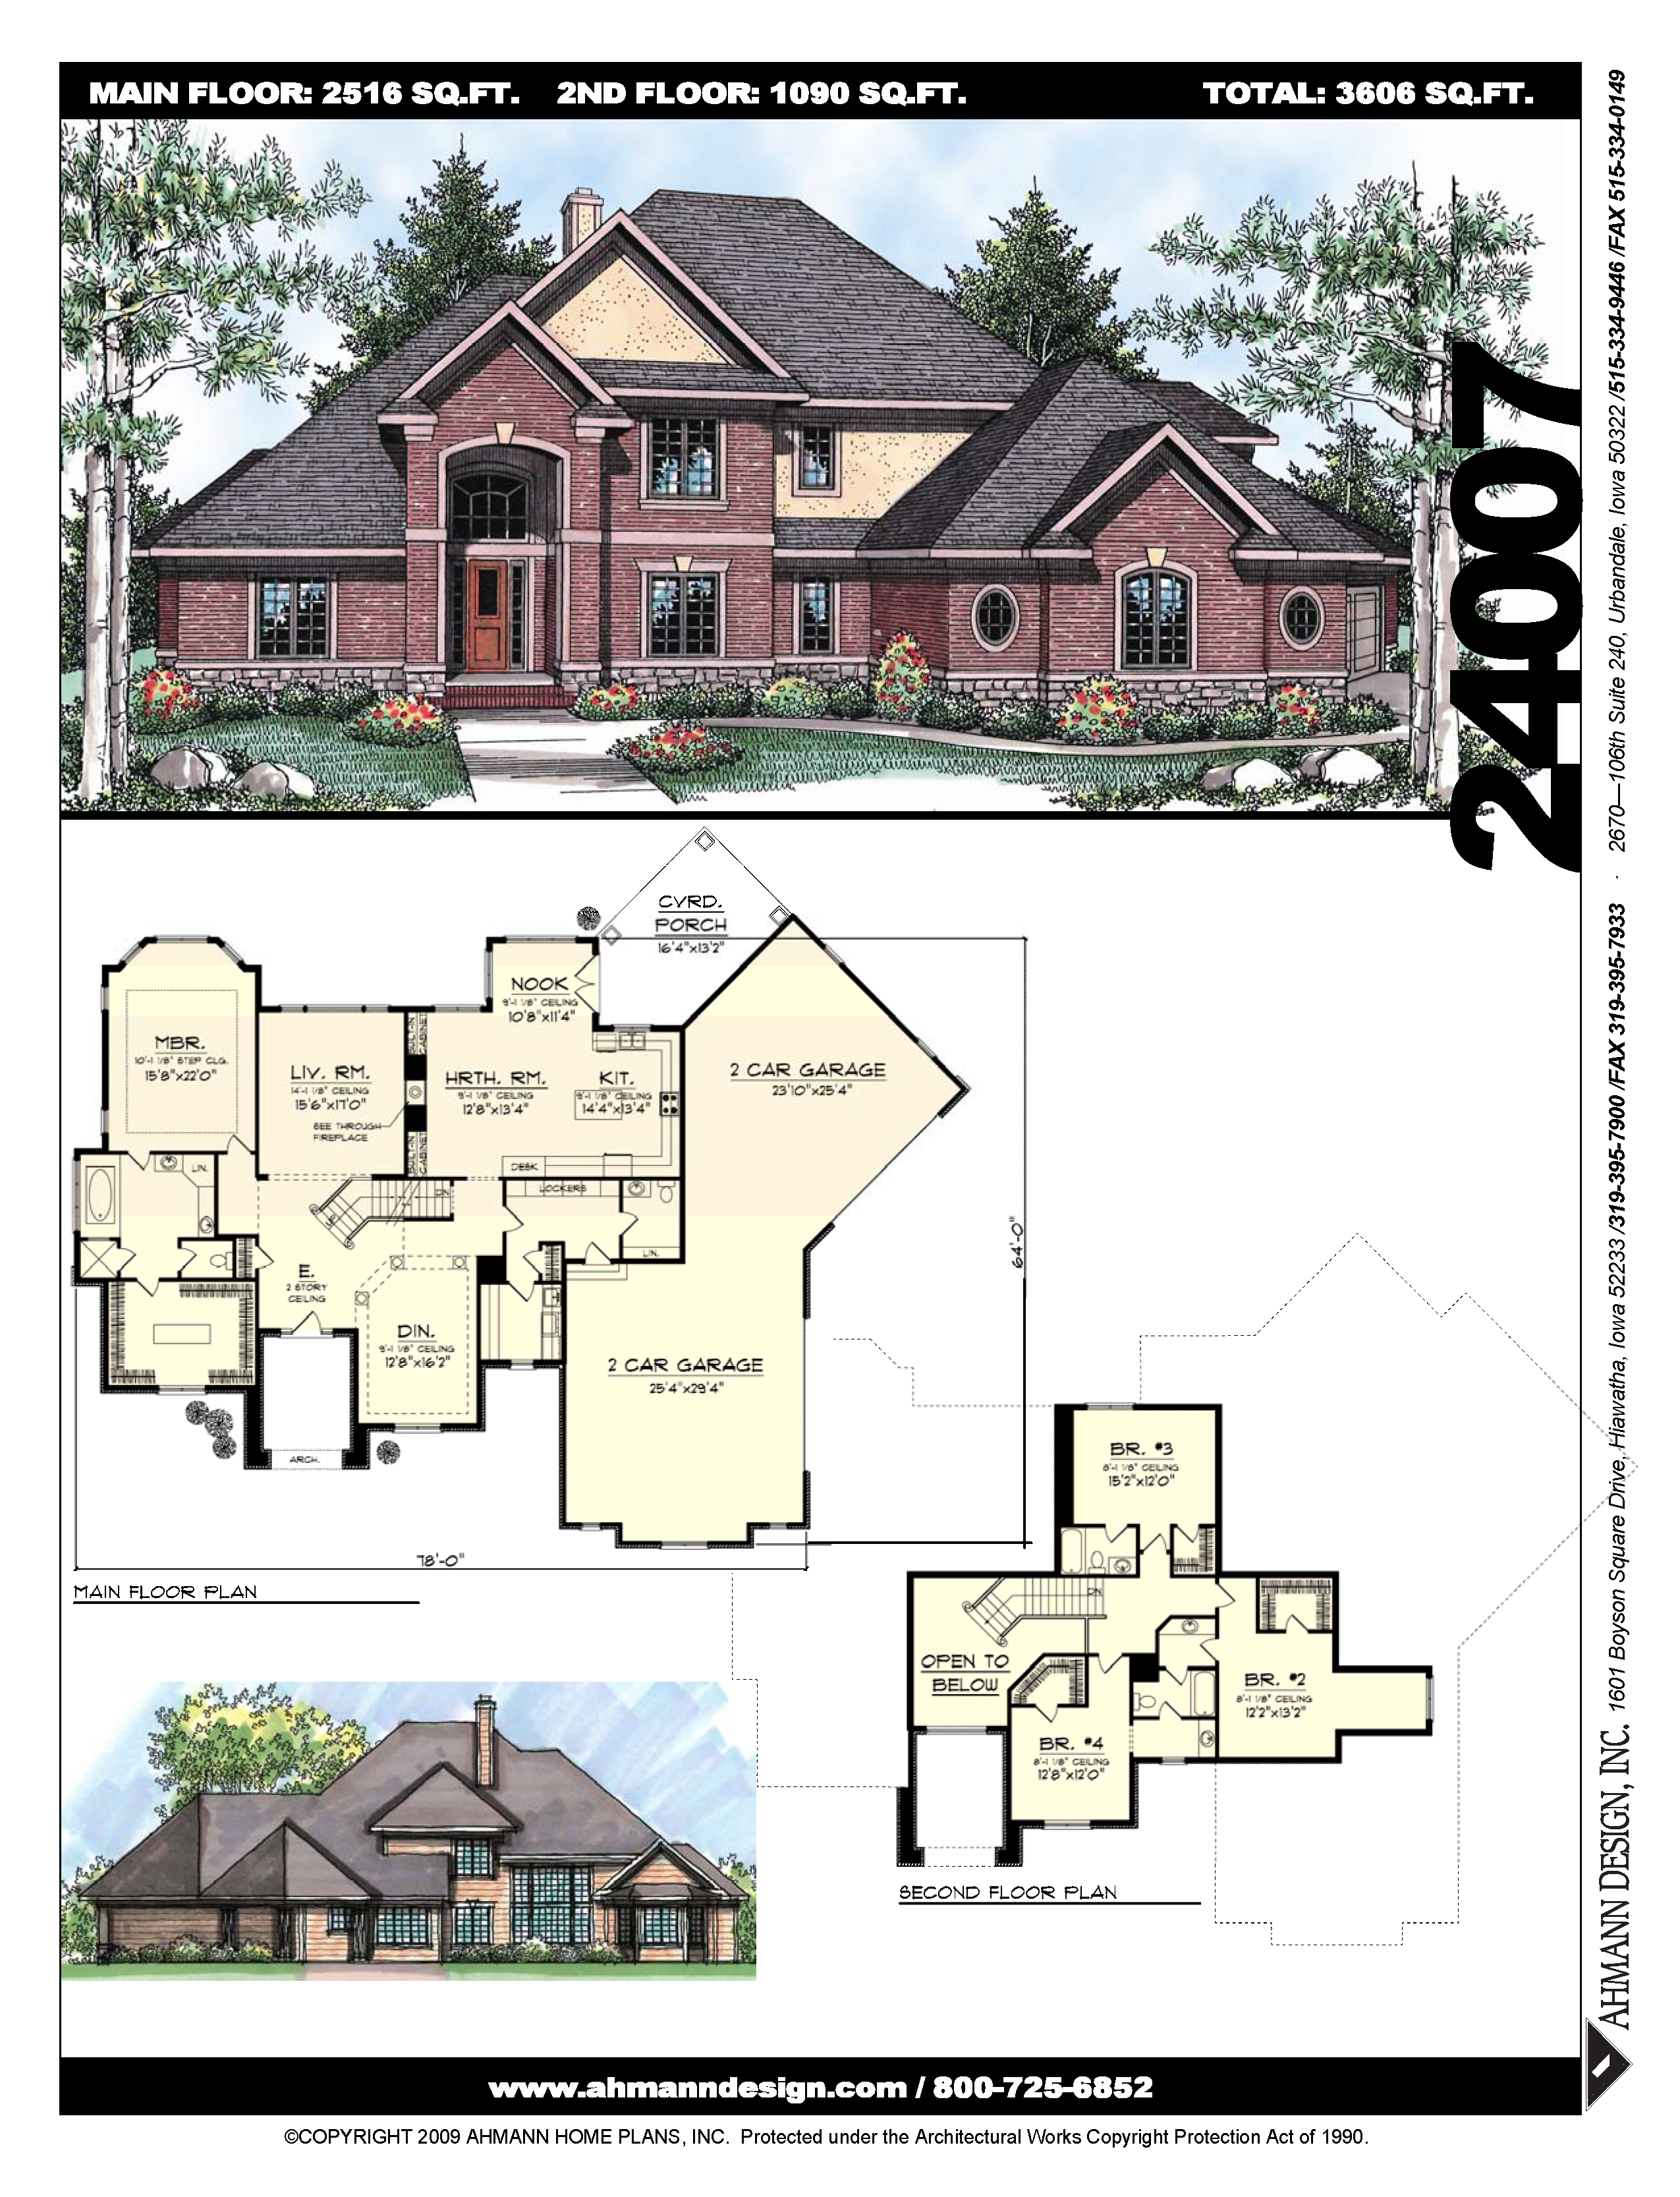 24007 | 1 1/2 story plans in 2019 | House plans, Sims house ... on brick ranch house plans, brick house with vinyl siding, brick and rock house plans, two story brick traditional house plans, brick french country house plans, 4-bedroom brick house plans, brick and cedar house plans, brick and stone house plans,